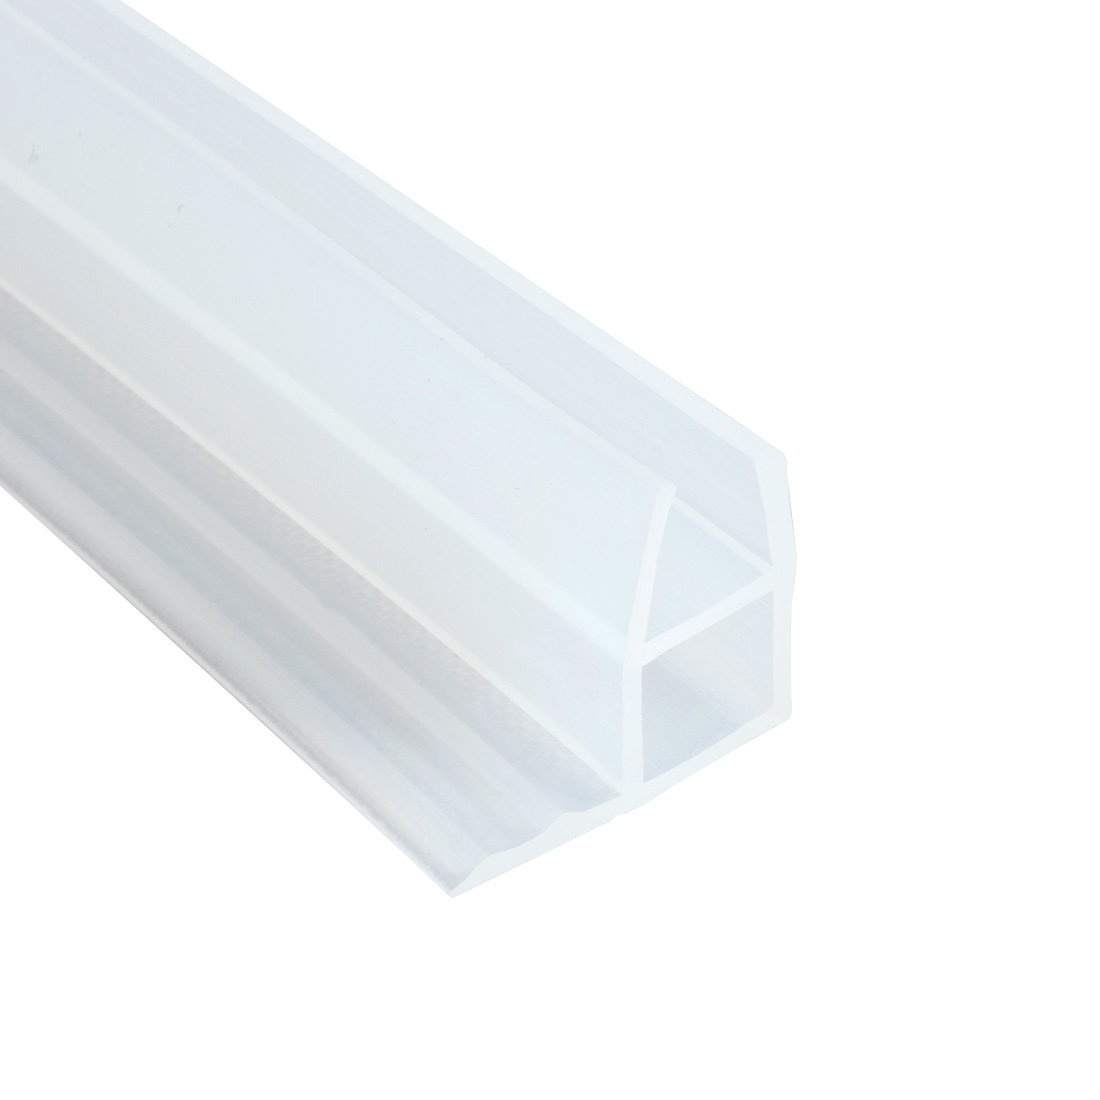 sourcingmap 78.7-inch Frameless Window Shower Door Seal Clear for 6mm (Approx 1/4-inch) Glass a17030800ux0610